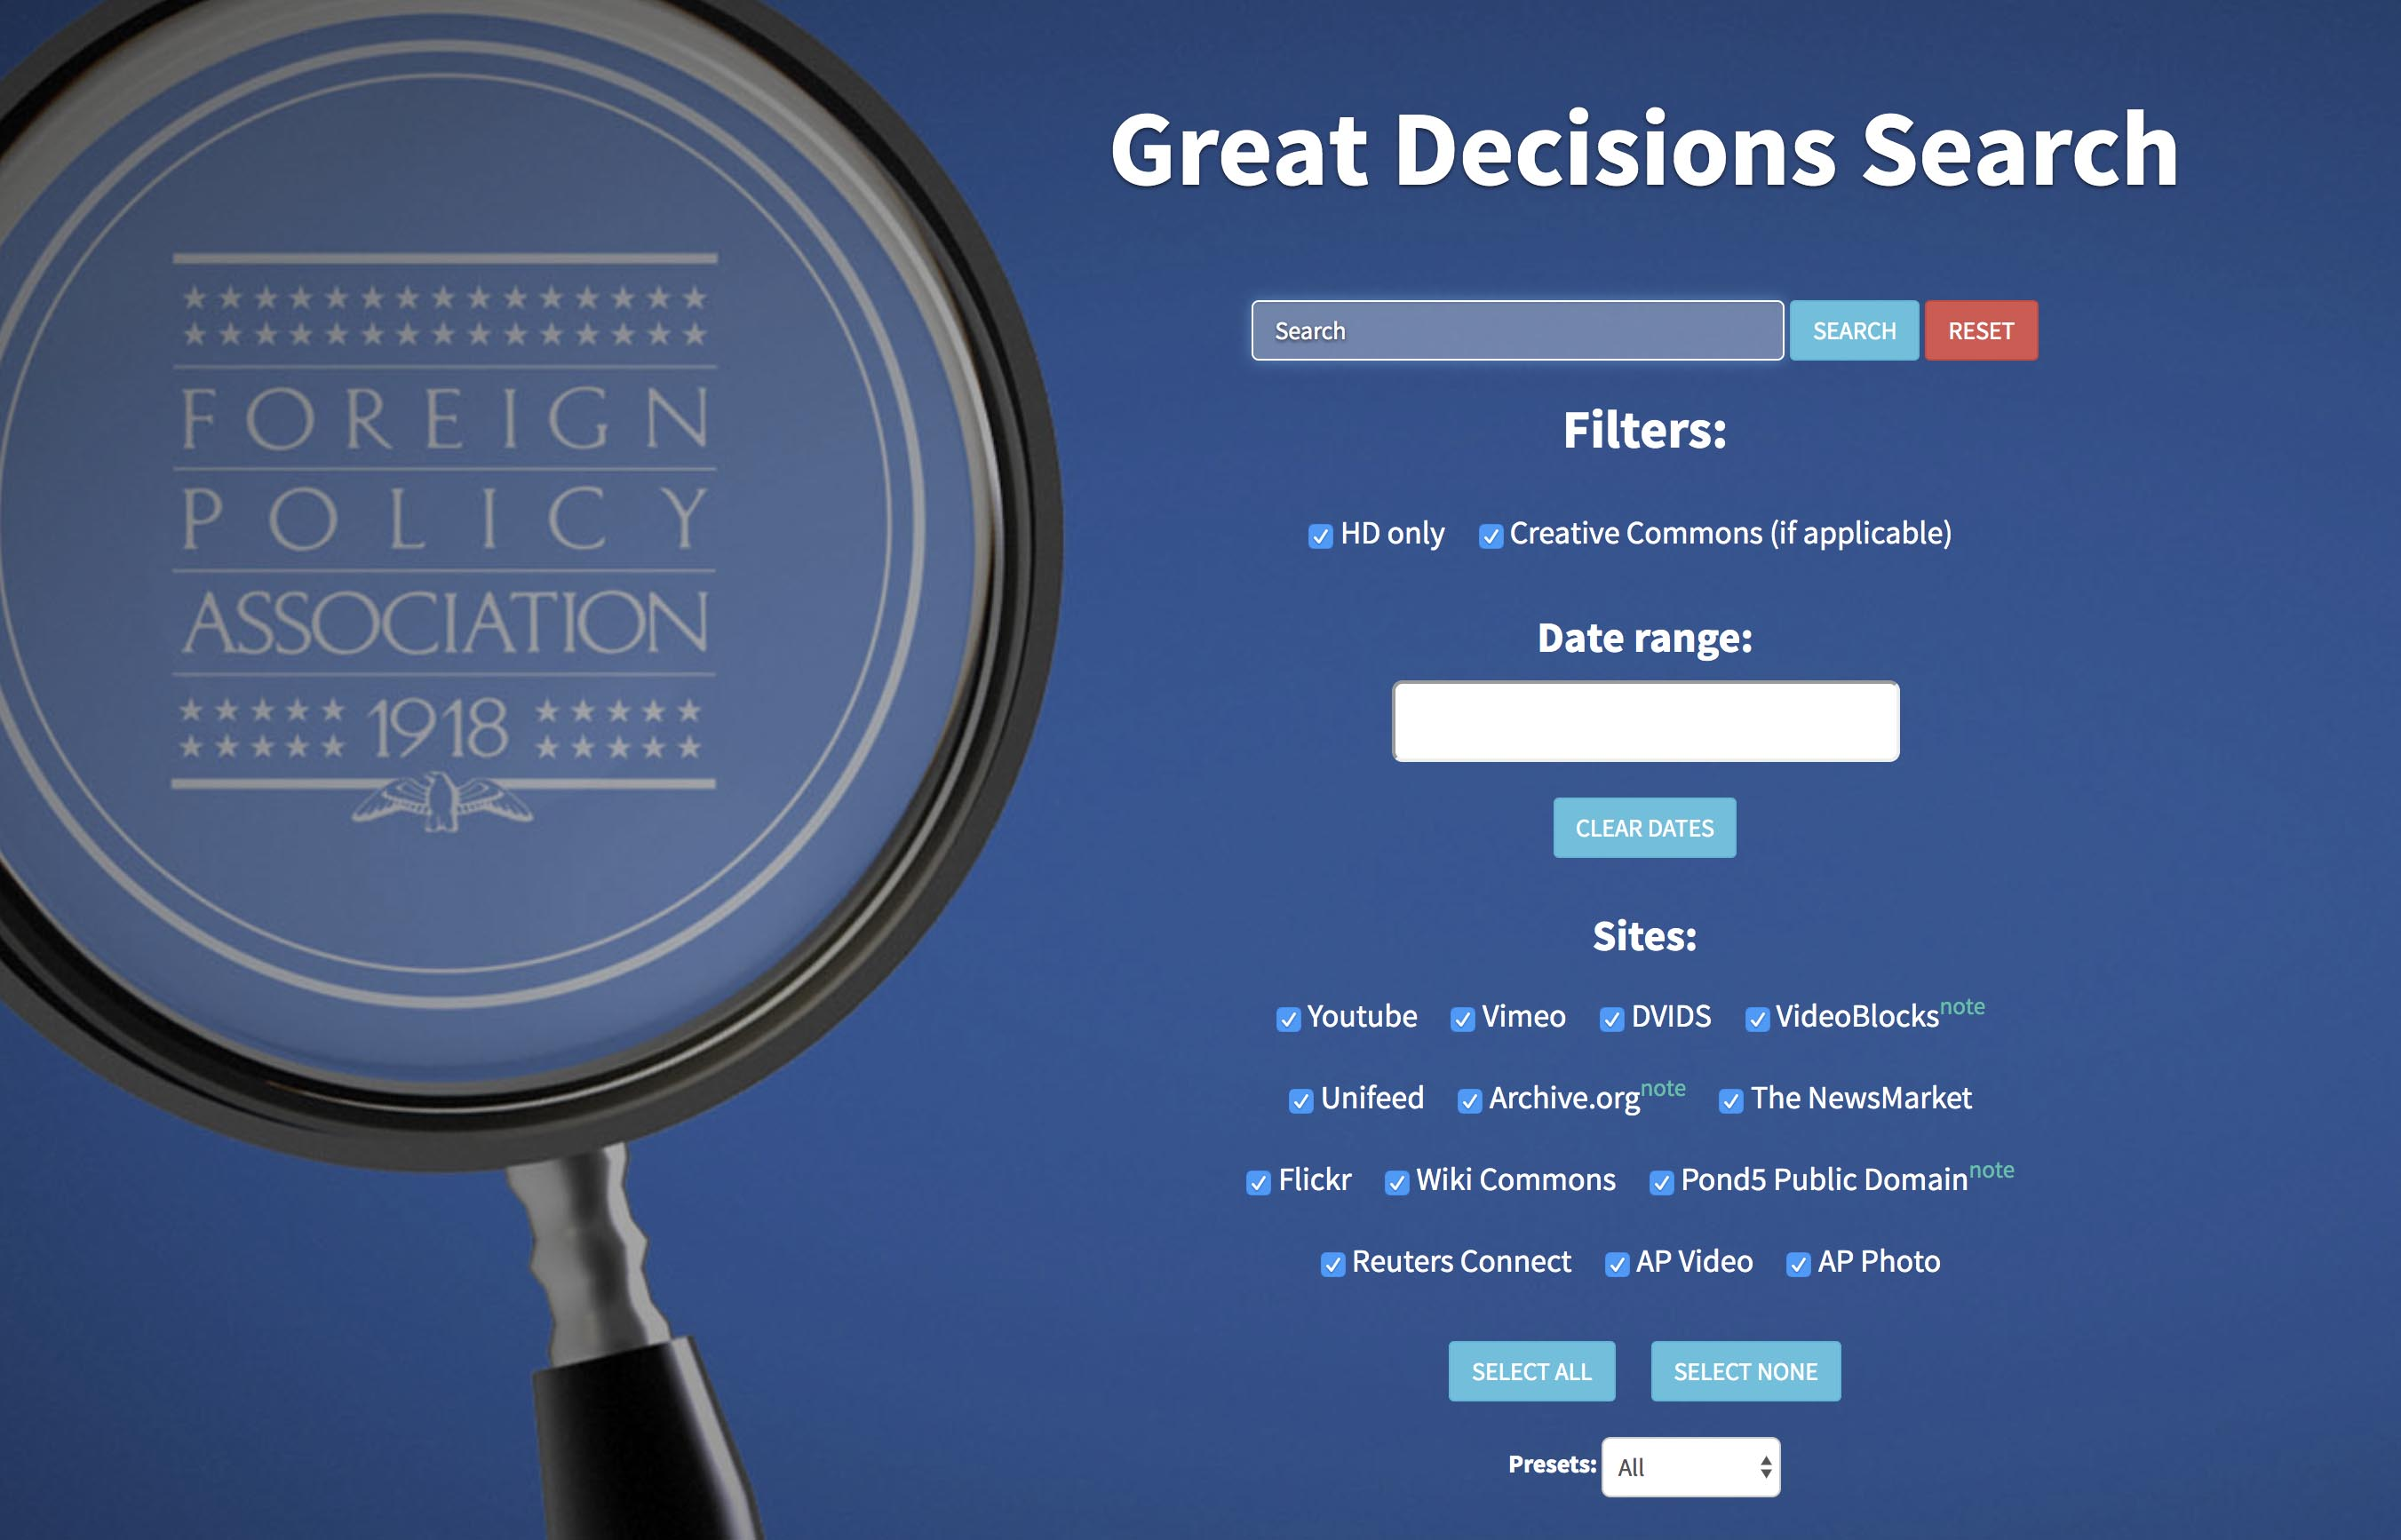 Great Decisions Search interface